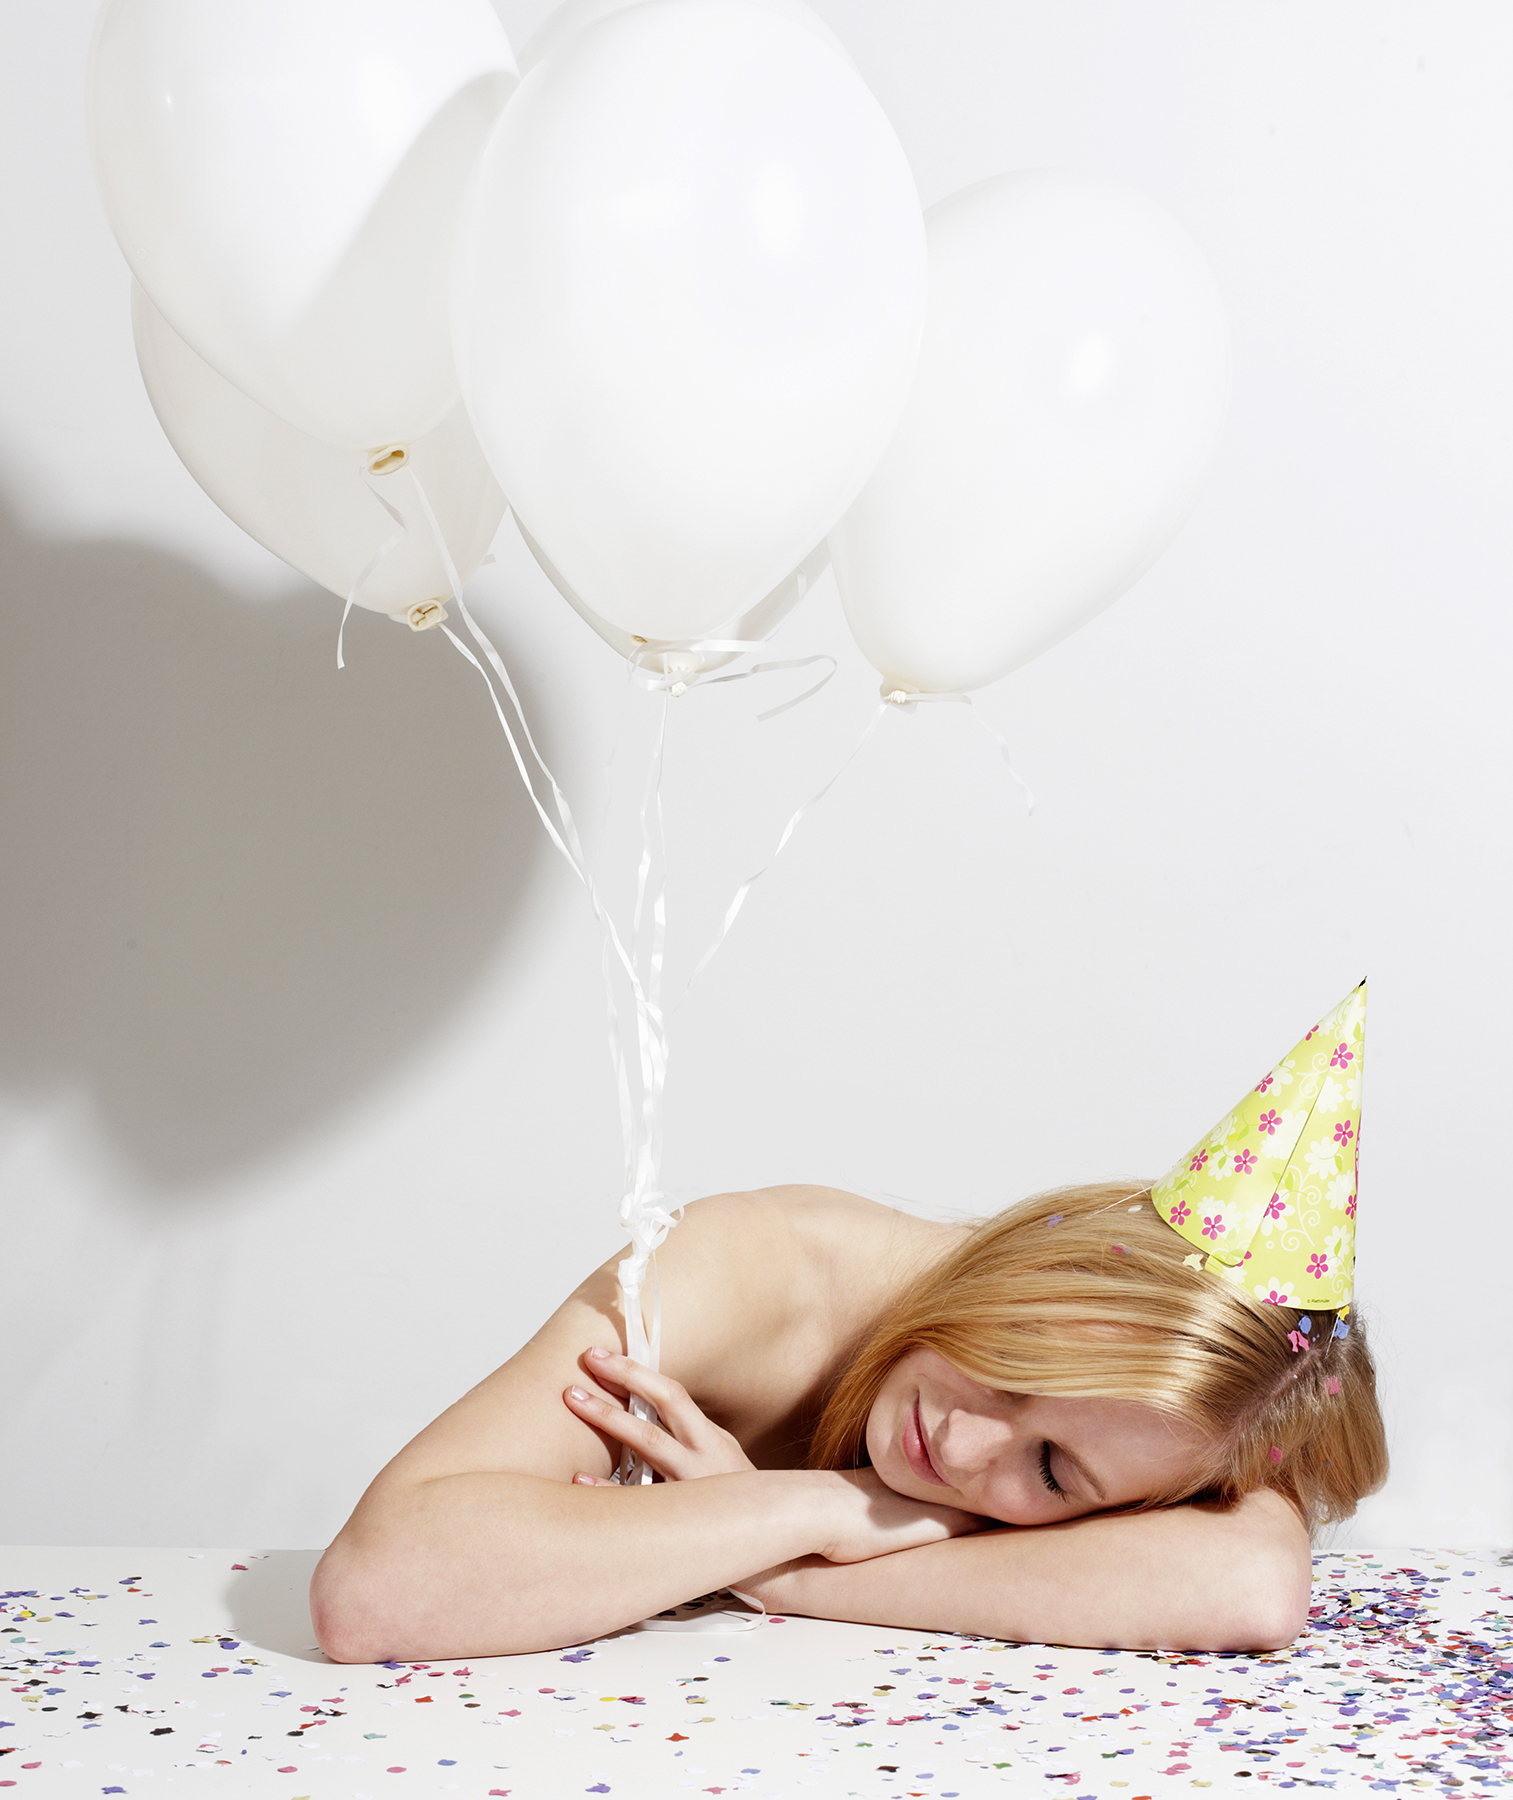 Woman asleep at a party